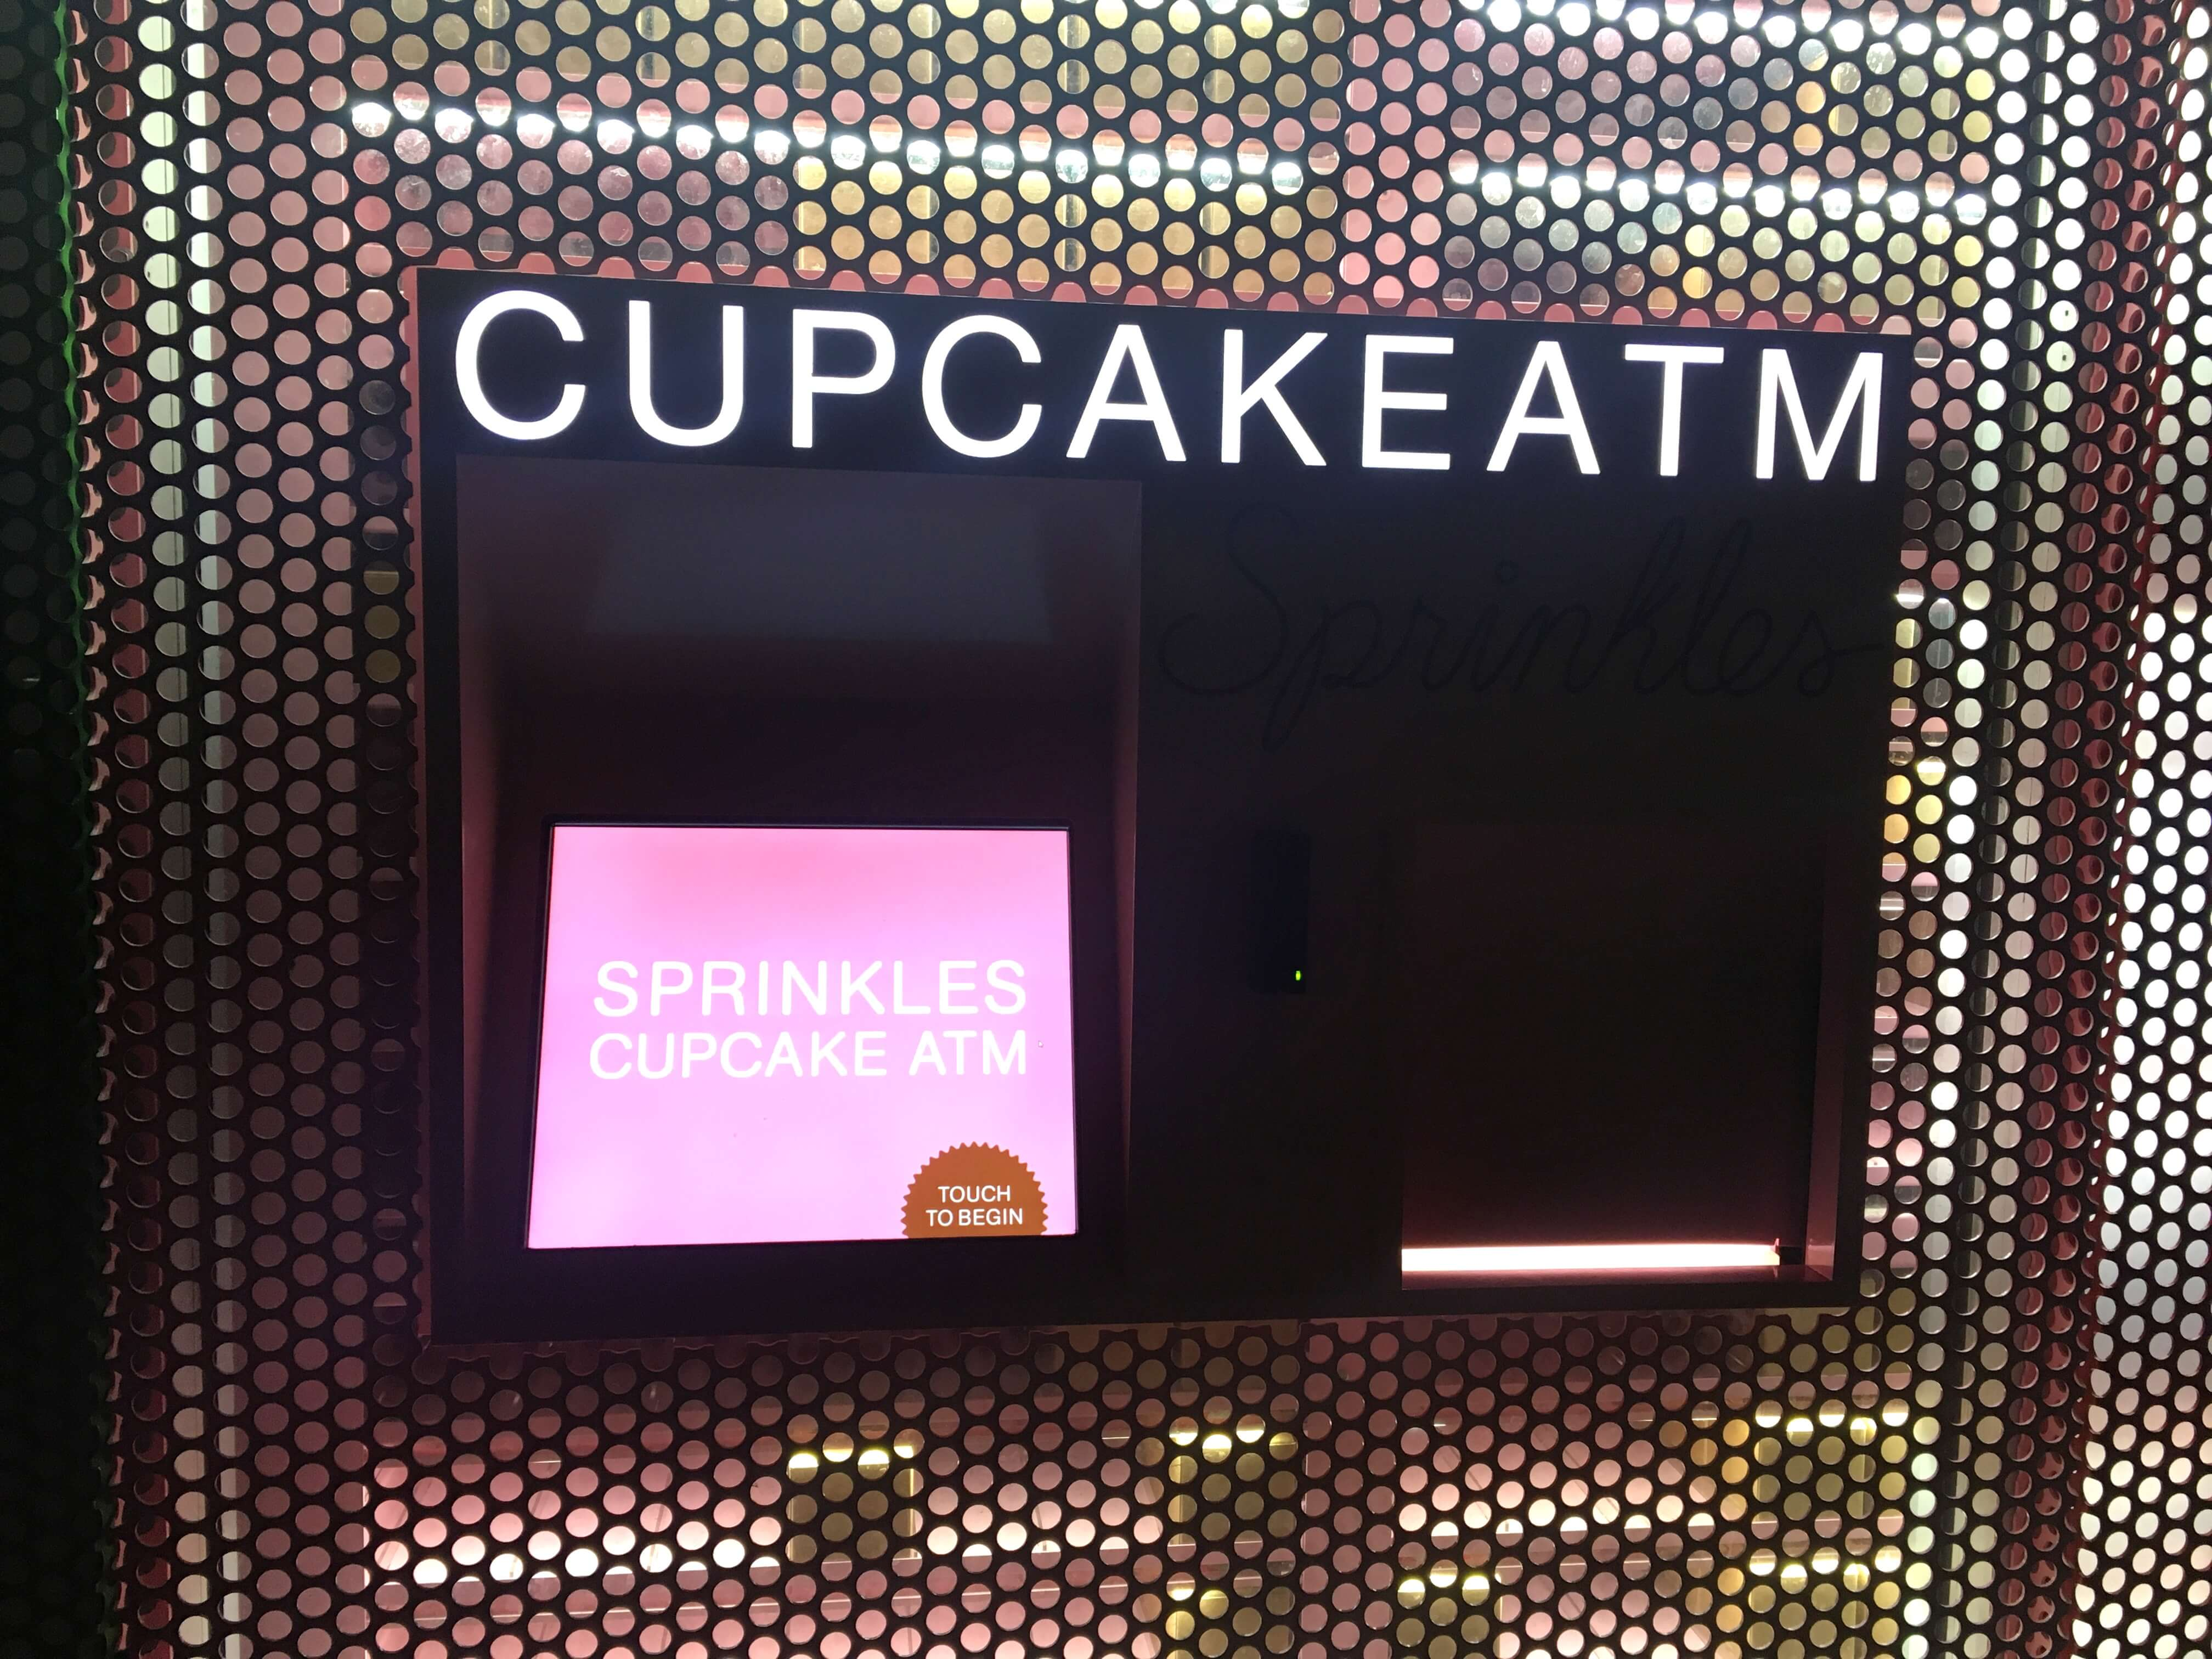 los-angeles-reisetagebuch-makeupinflight-sprinkles-cupcake-atm-1